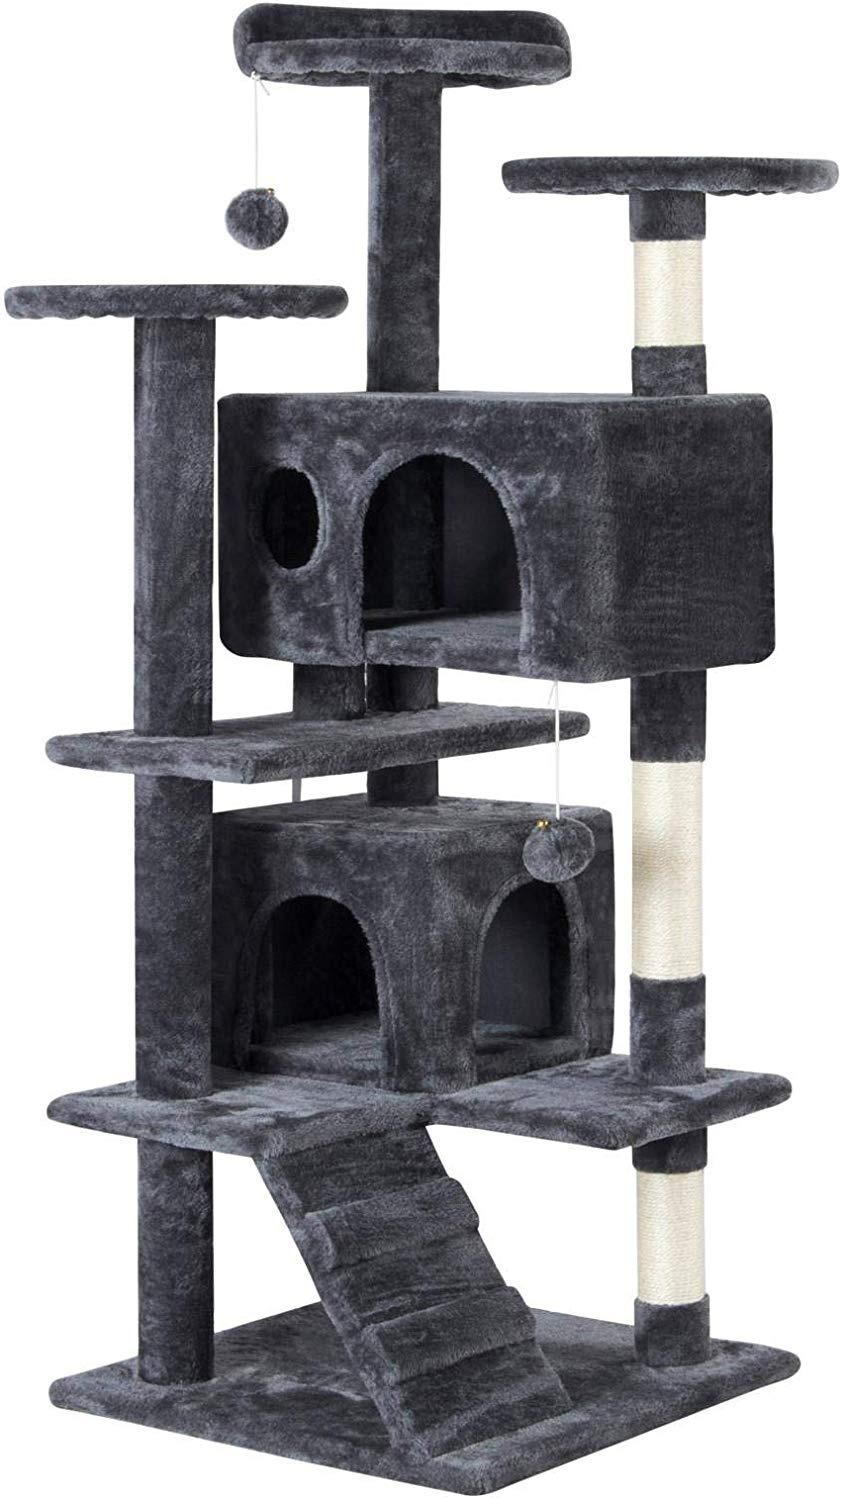 Yaheetech Cat Condo 51 Inch Playhouse